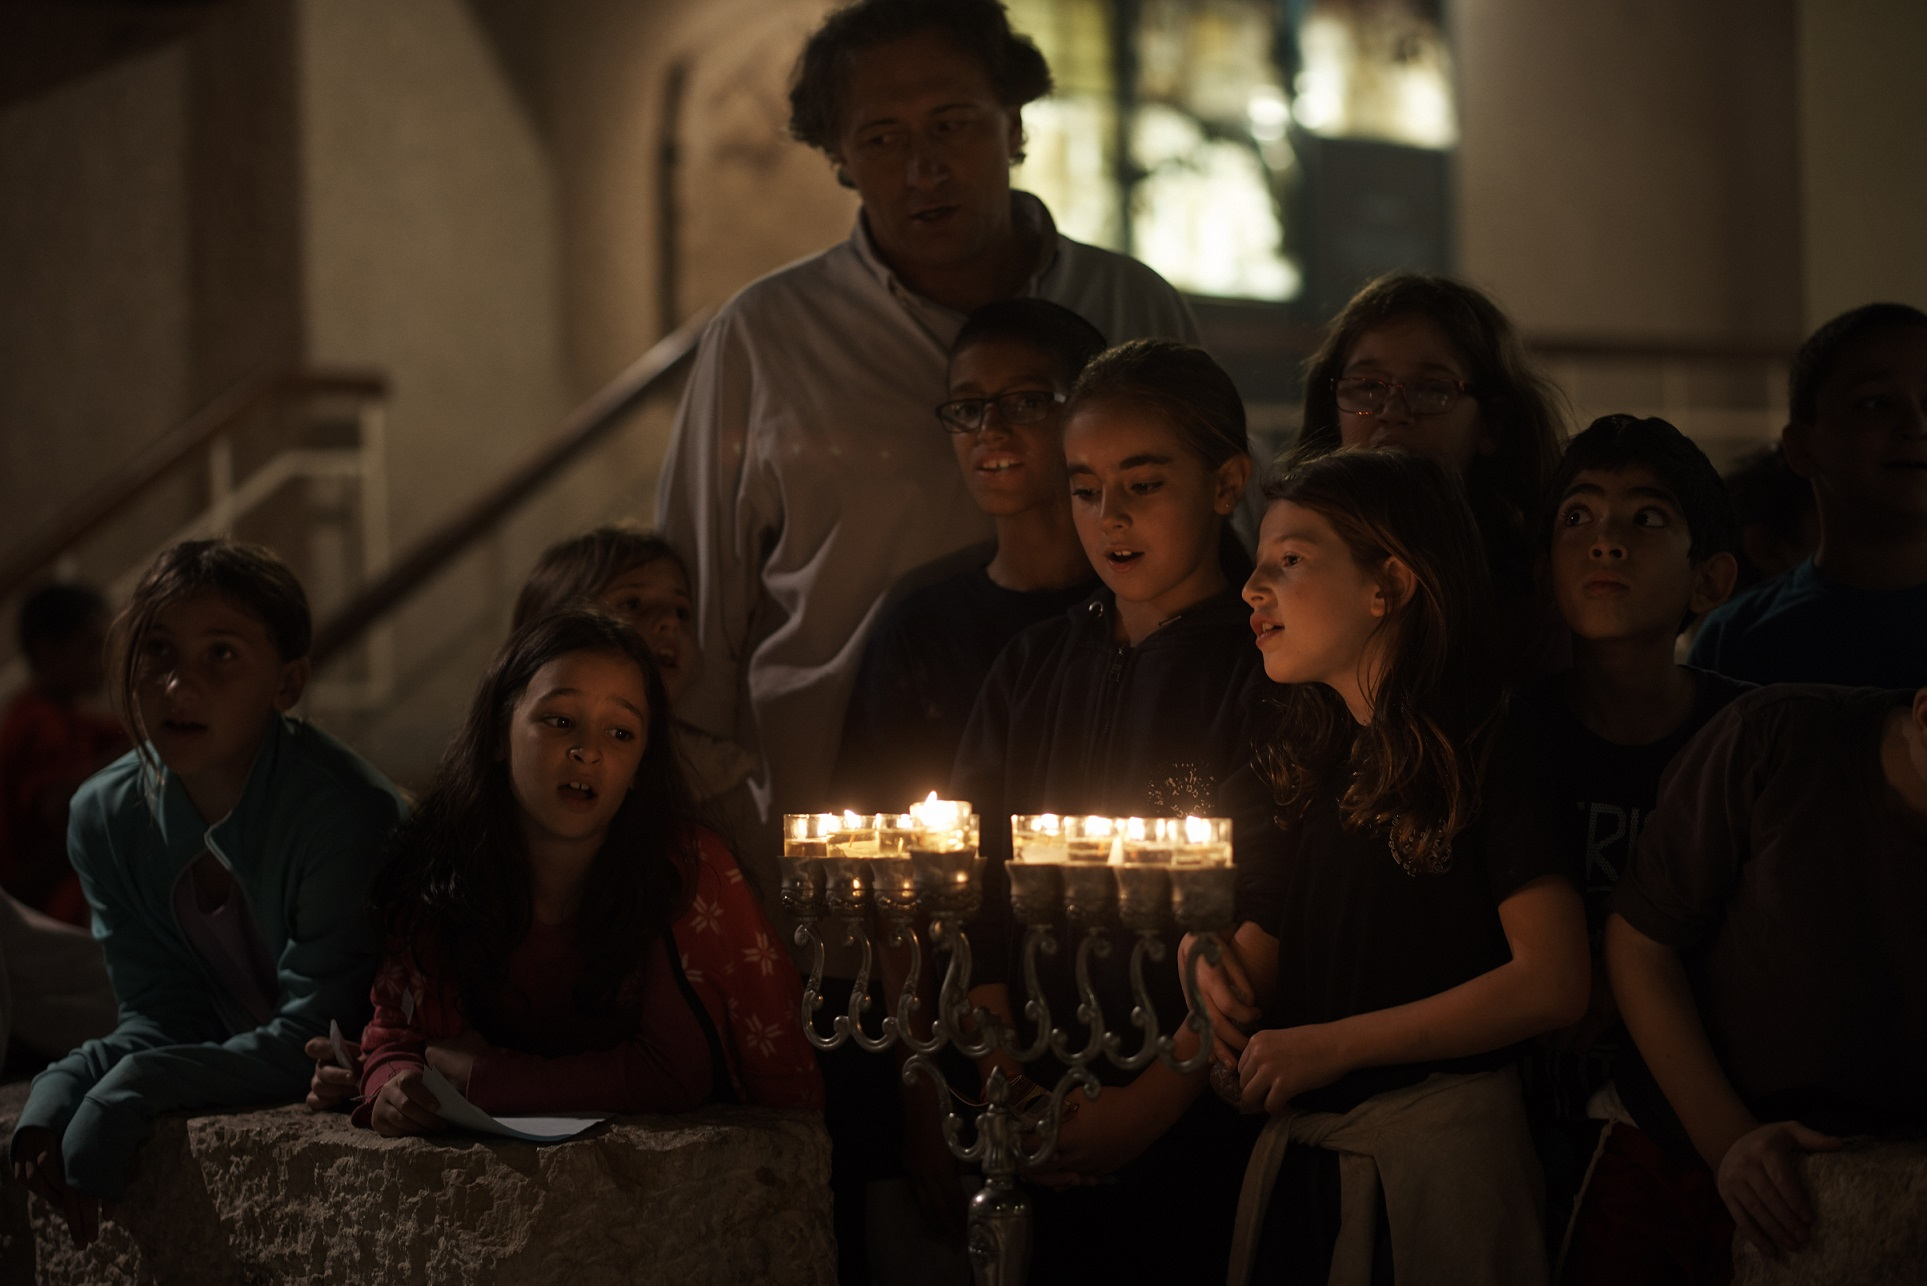 Children singing after lighting a hanukkiah in the Old City of Jerusalem. Photo by Yael Harman